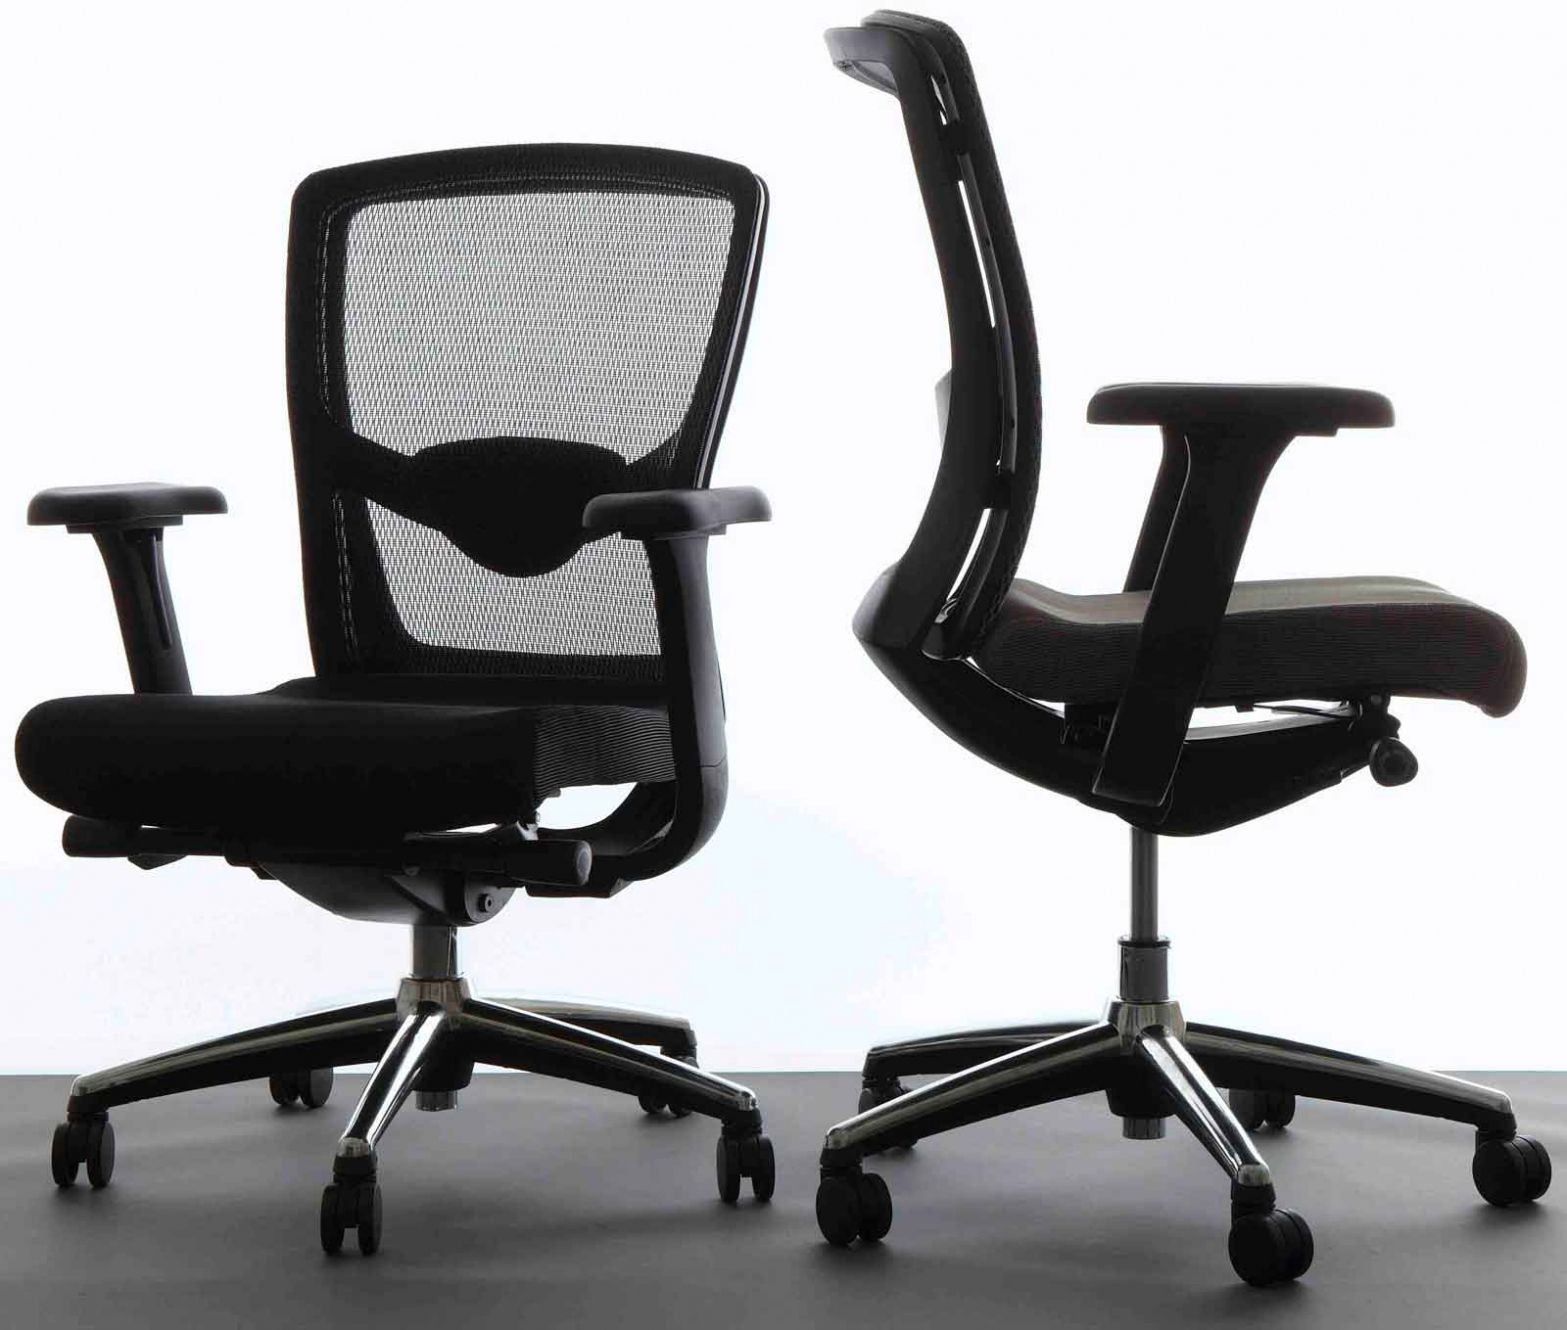 99+ Ergonomic Home Office Furniture - Luxury Home Office Furniture ...